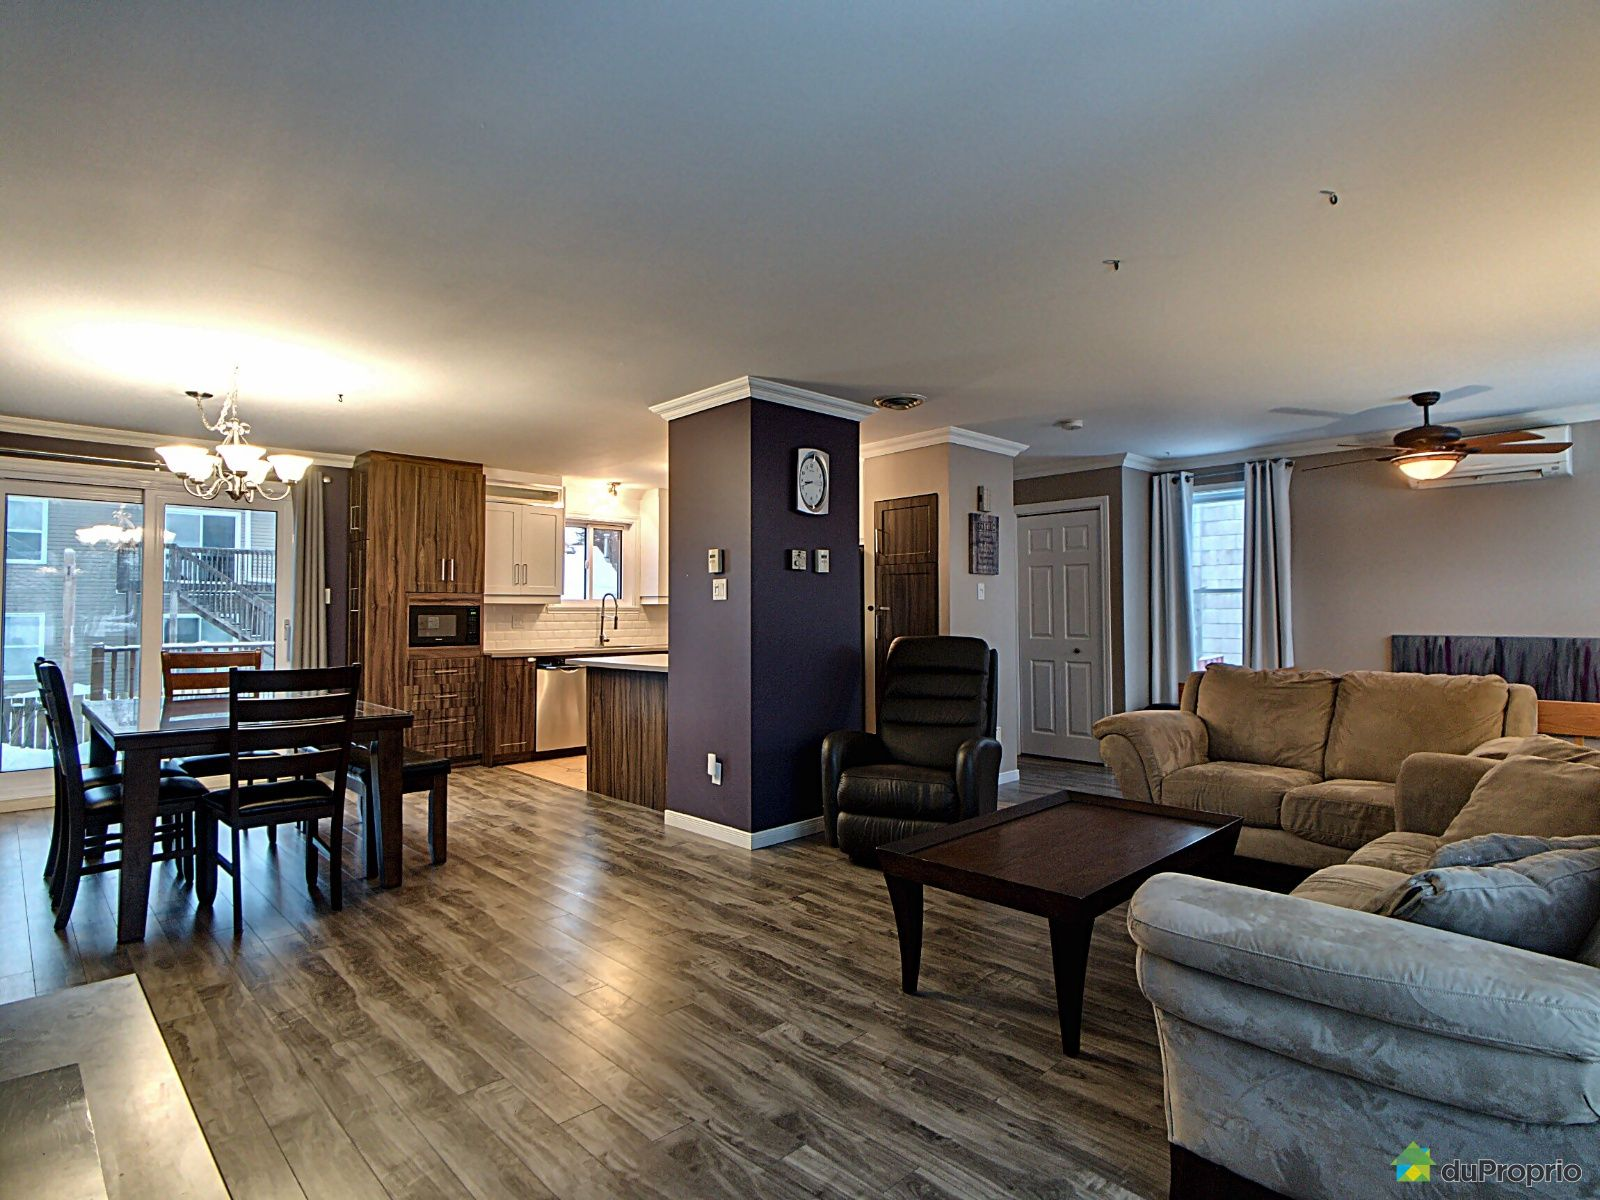 Dining Room / Living Room - 2284 rue Richard, St-Romuald for sale